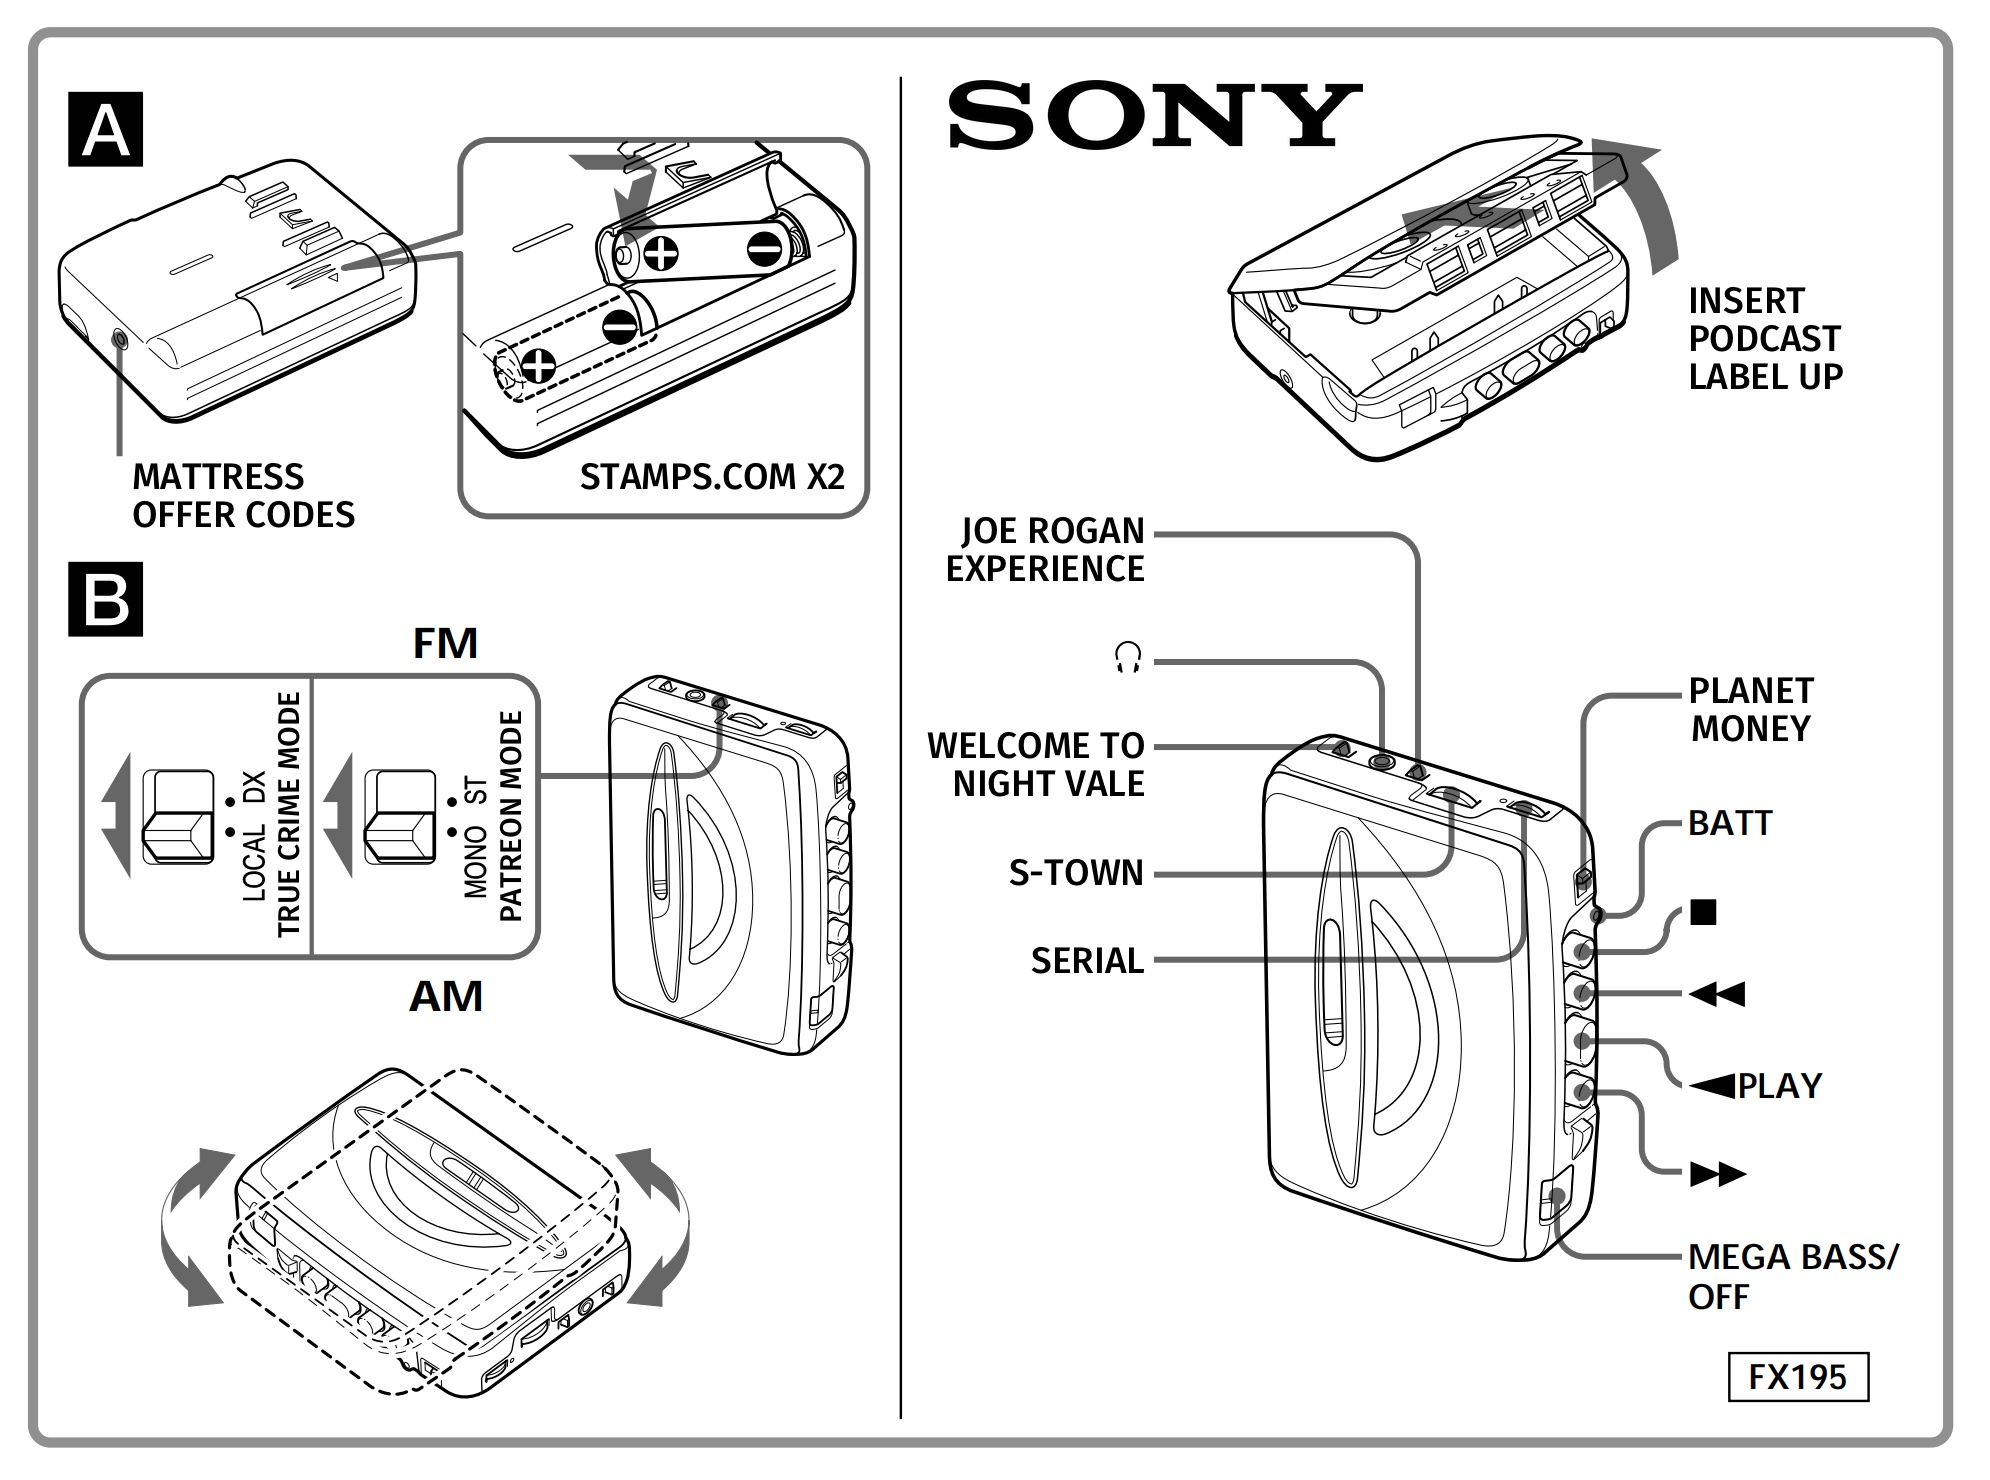 From Walkman to podcast: Sony Music moves into the podcast business